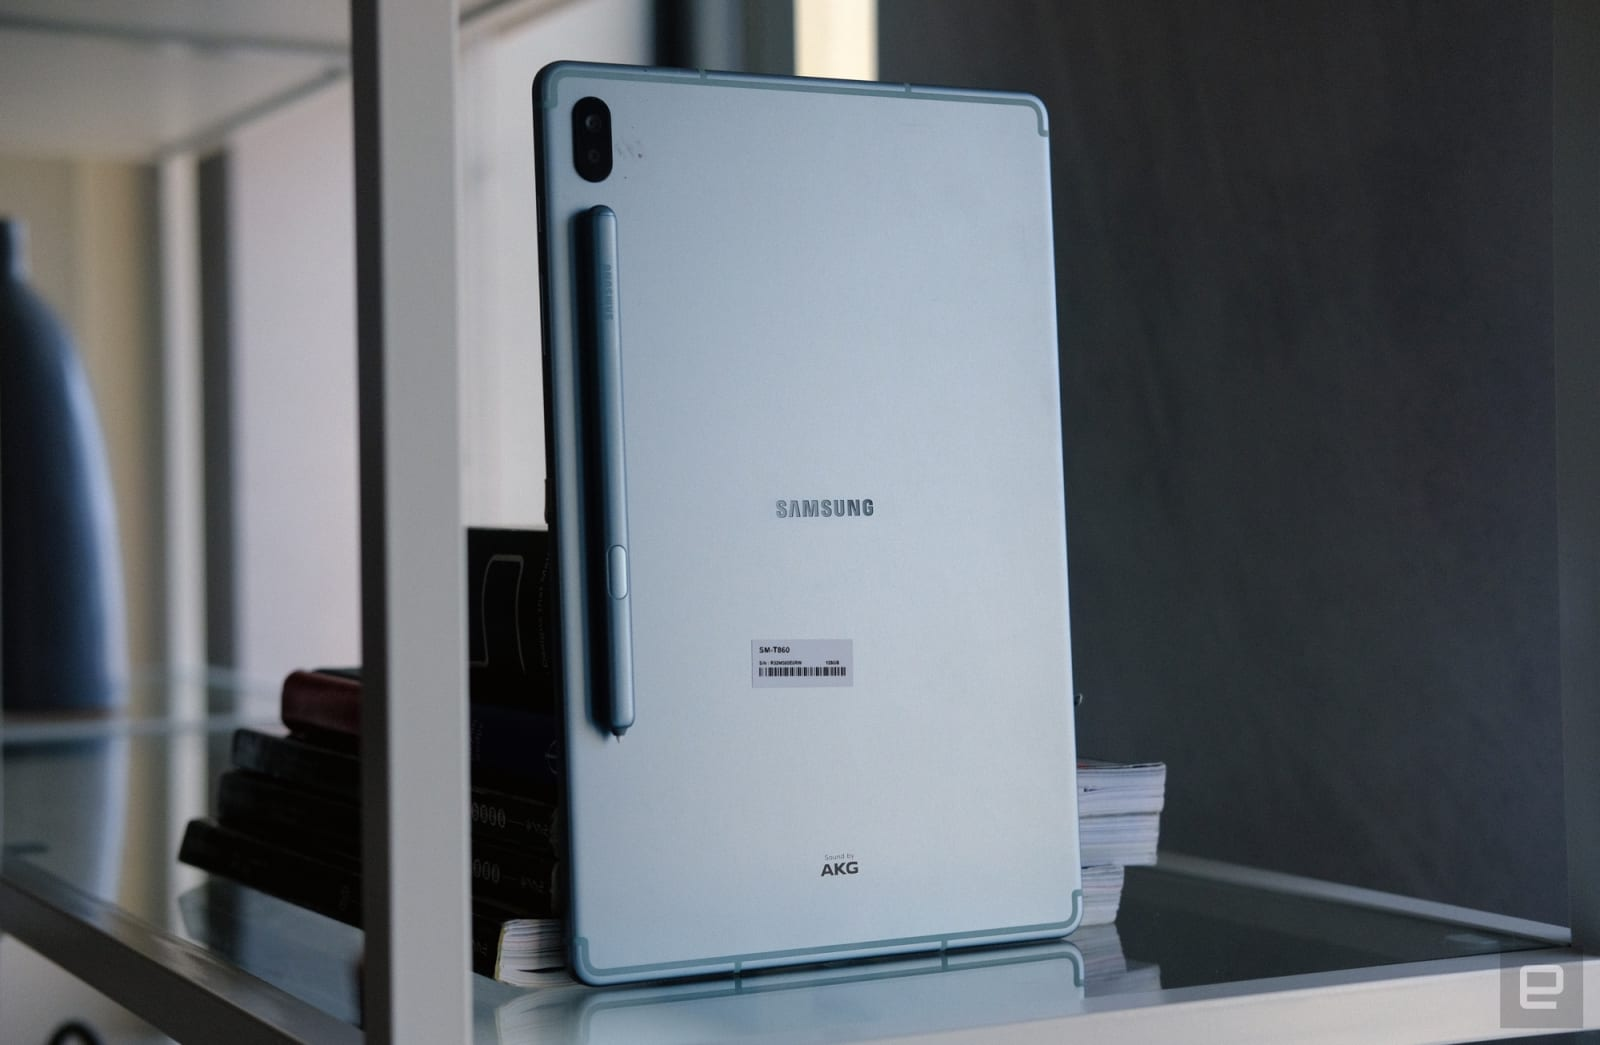 Samsung Galaxy Tab S6 hands-on